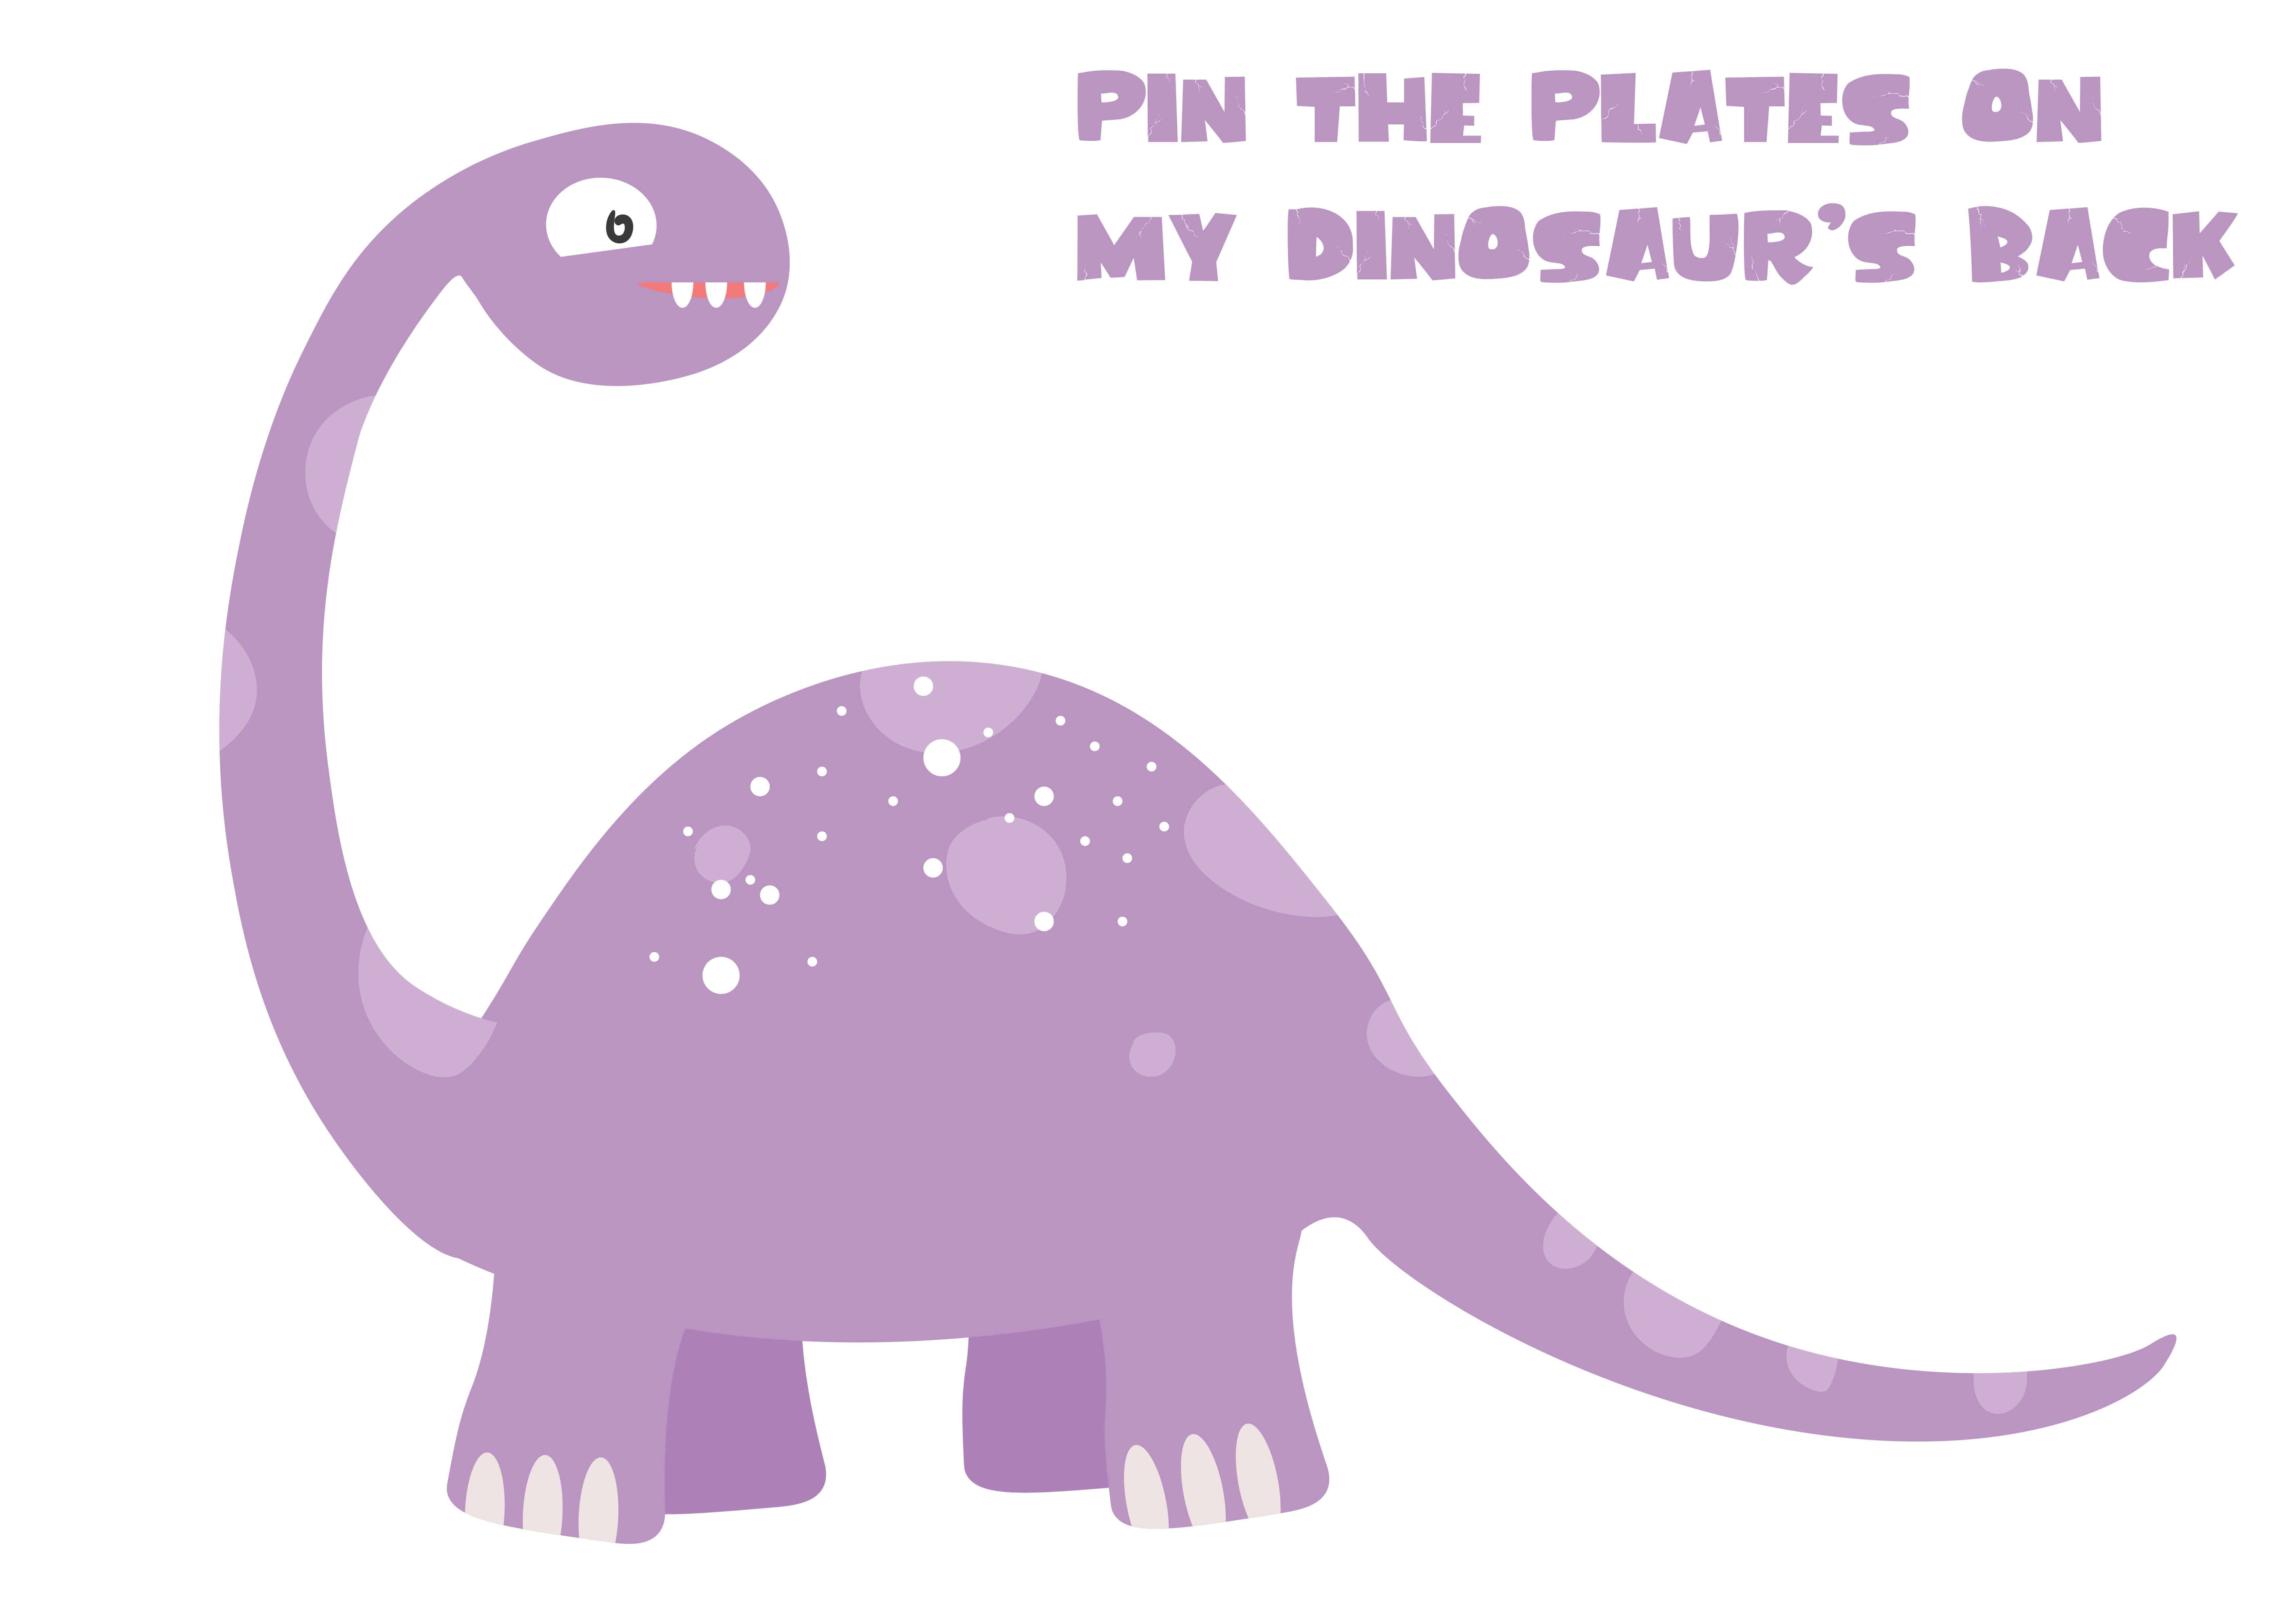 pin the tail on the dinosaur template - pin the tail on the dinosaur template image collections